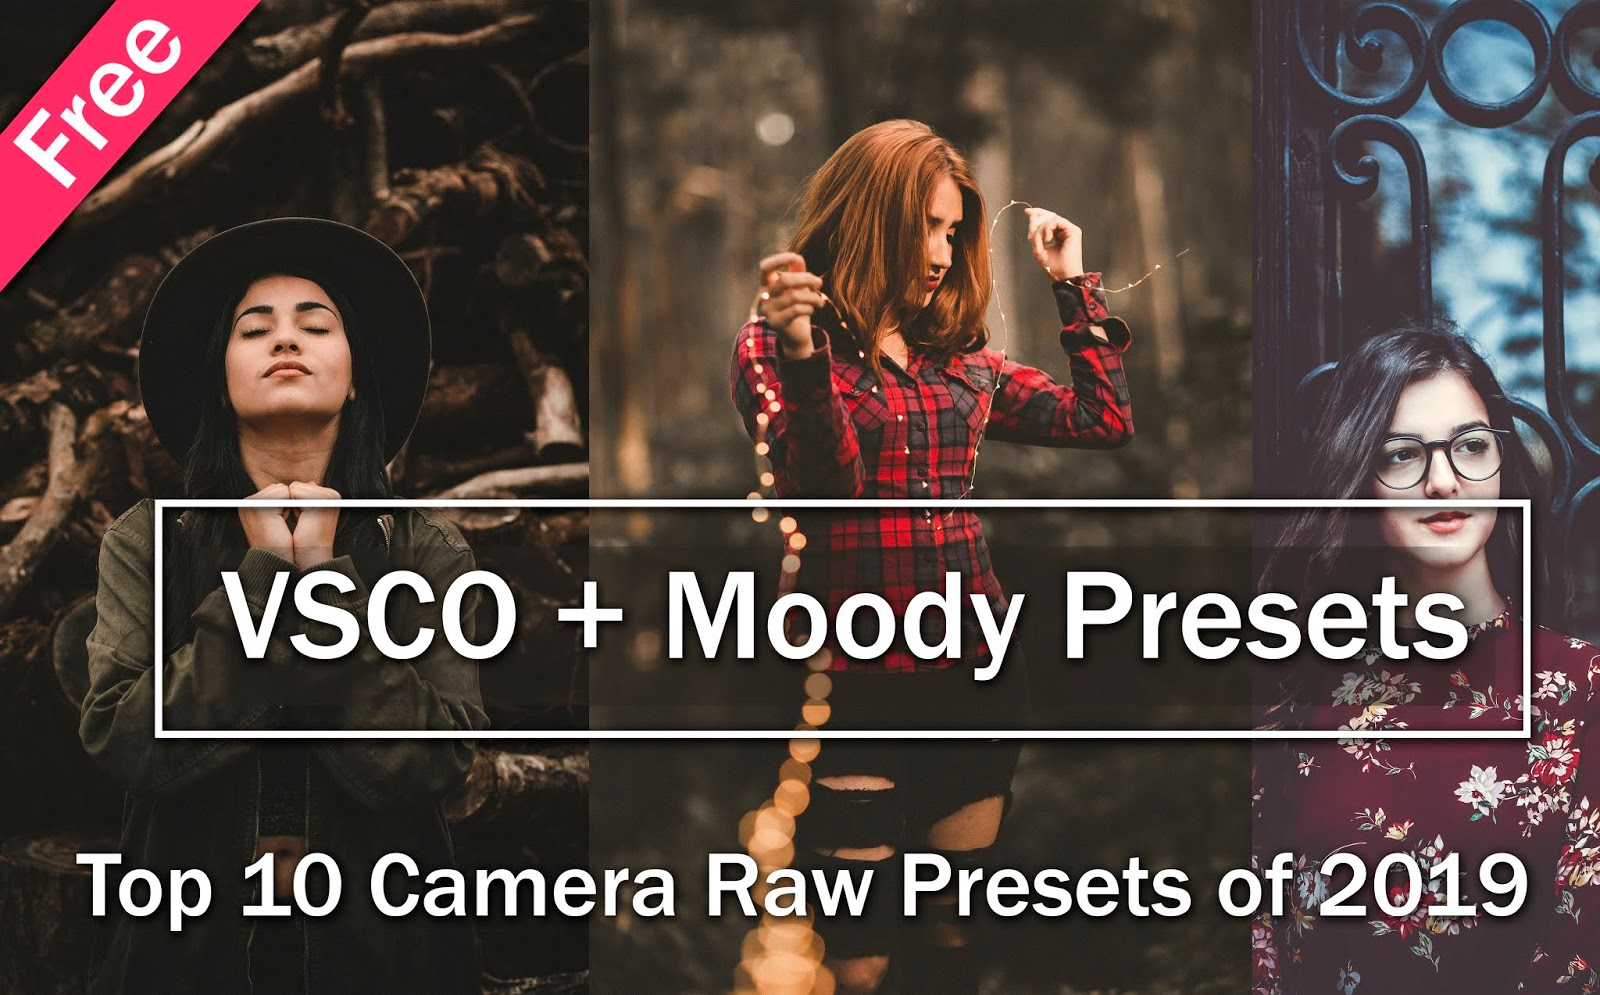 Download Free Top 10 VSCO Camera Raw Presets of 2020 | Download Free Top 10 Moody Camera Raw Presets of 2020